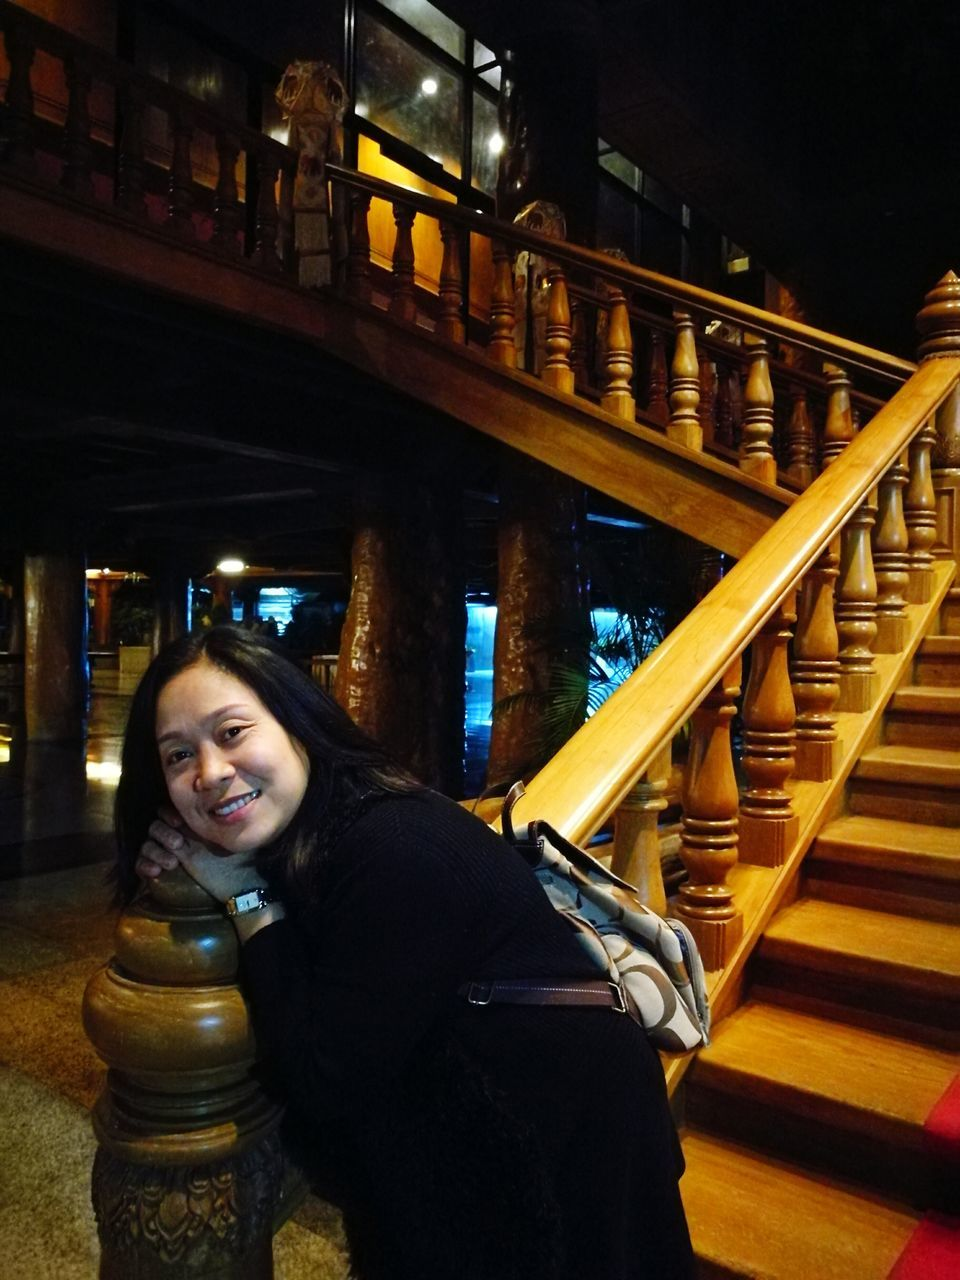 real people, night, young women, young adult, one person, lifestyles, railing, front view, leisure activity, smiling, illuminated, happiness, looking at camera, standing, built structure, portrait, architecture, alcohol, indoors